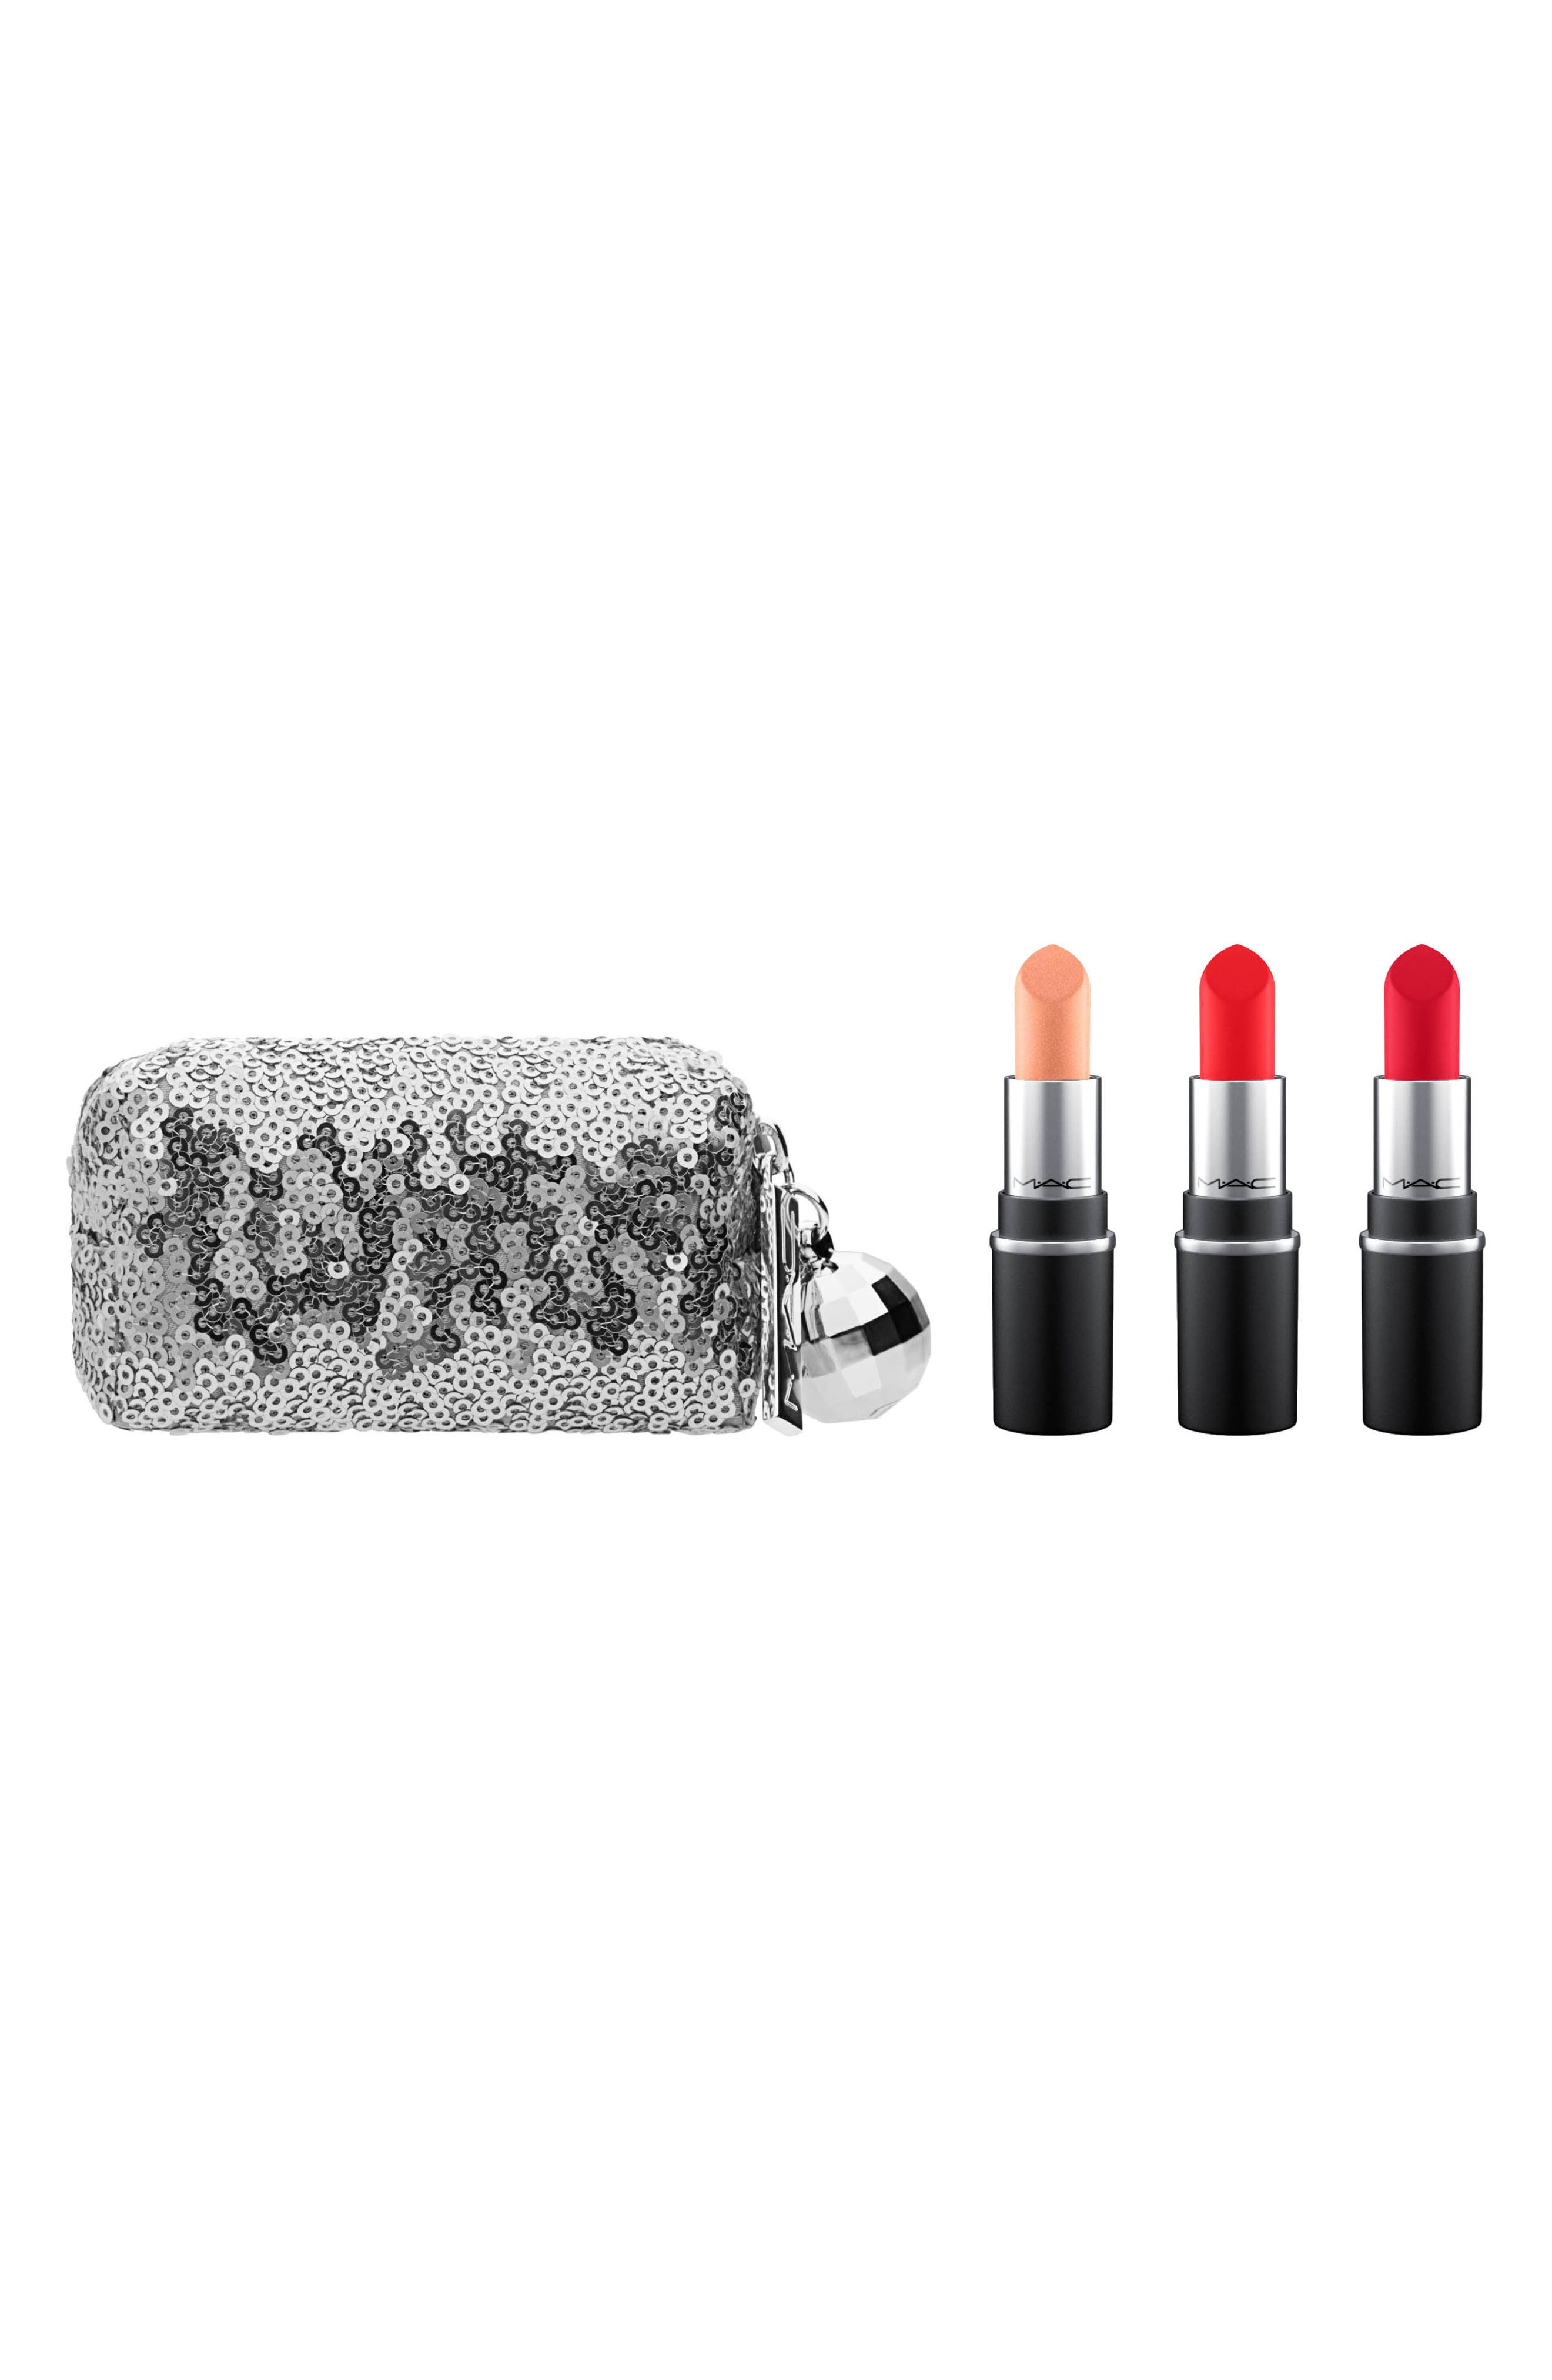 Alternate Image 1 Selected - MAC Snow Ball Warm Mini Lipstick Kit ($35 Value)